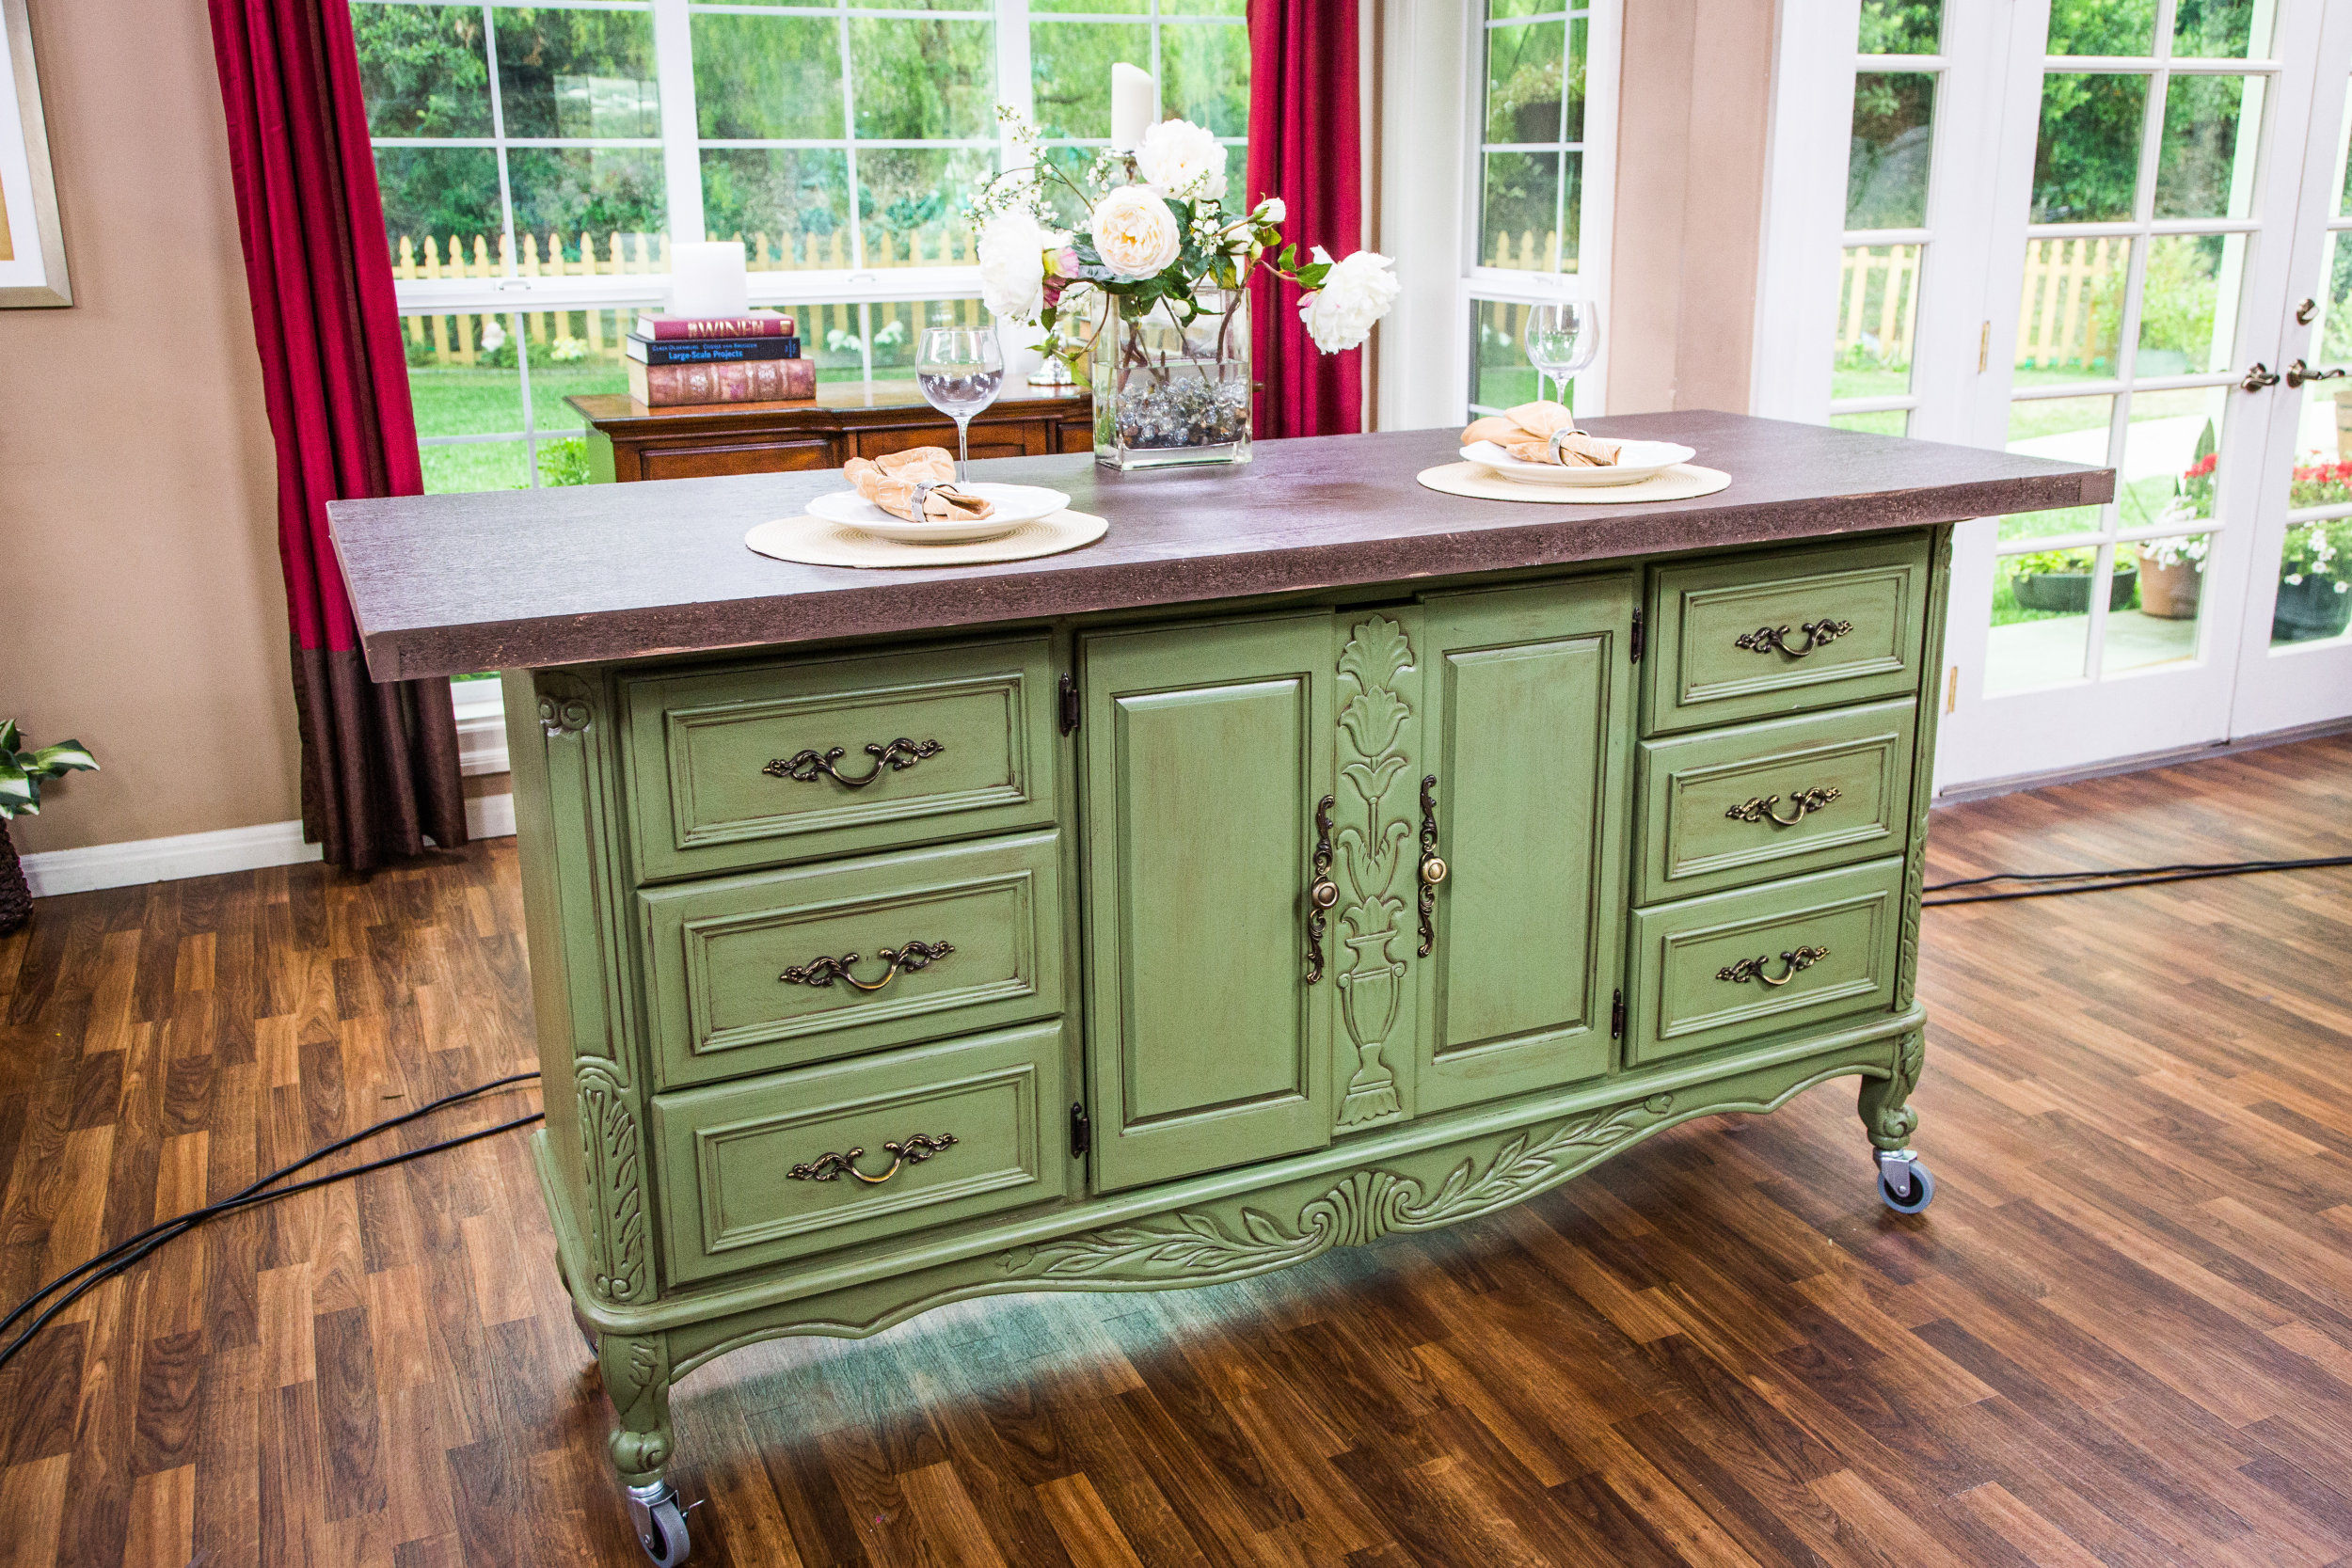 Diy Kitchen Island how-to - ken's diy kitchen island | home & family | hallmark channel